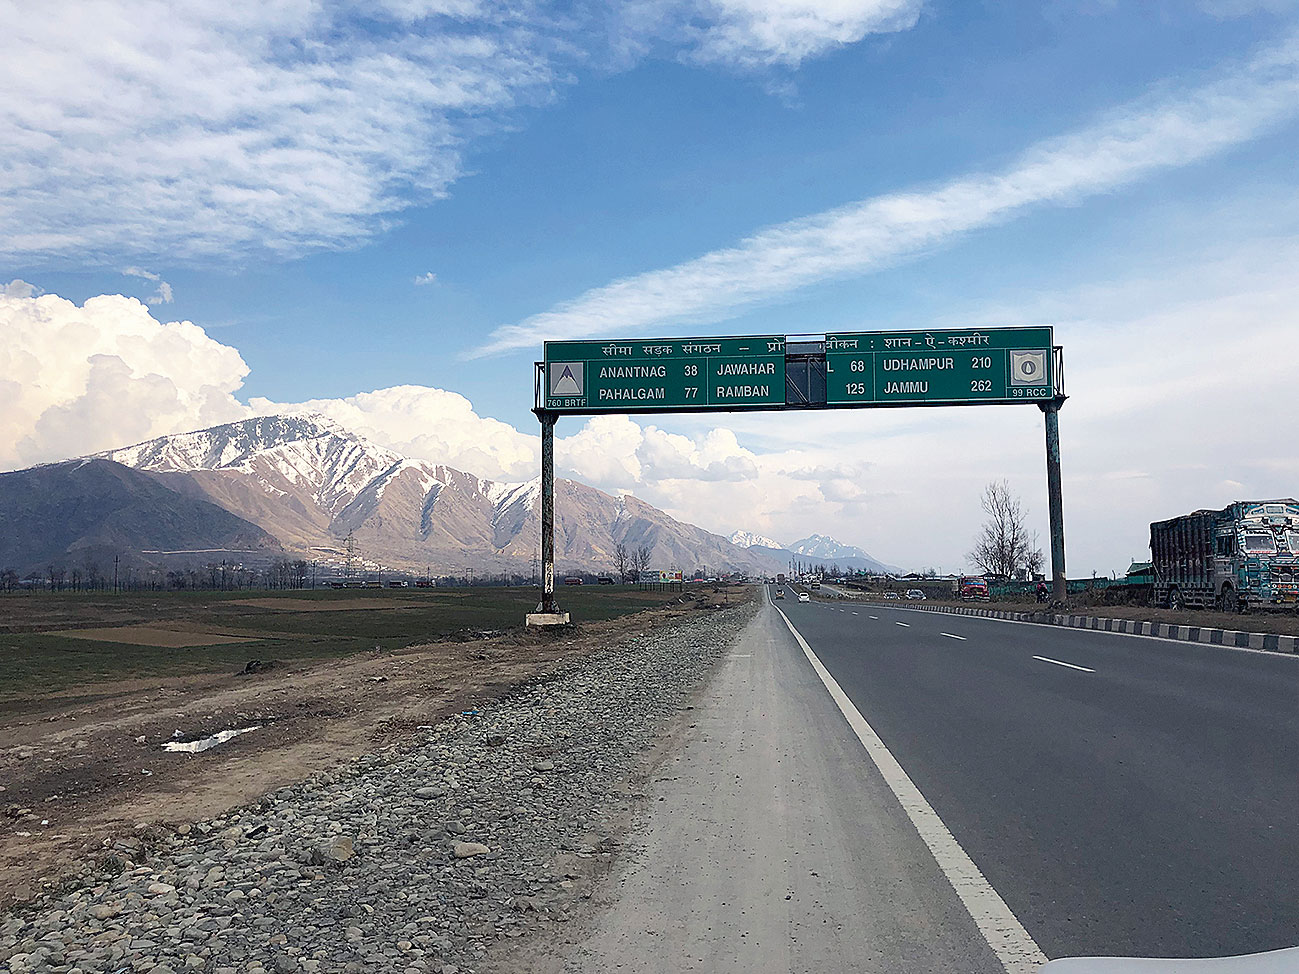 The gateway announcing the new Srinagar-Jammu expressway